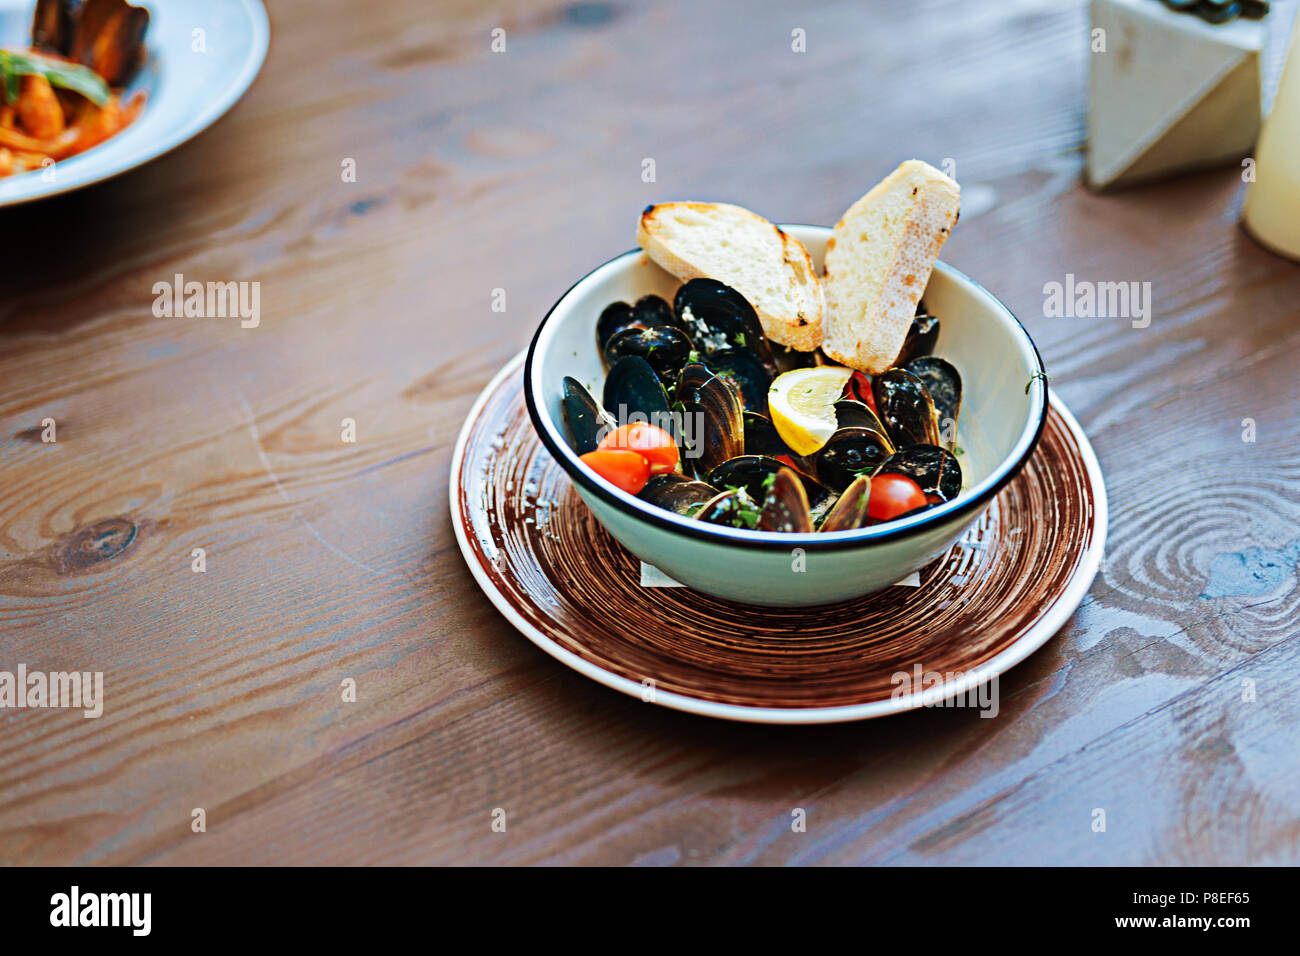 Yummy seafood dish standing on the table in restaurant - Stock Image